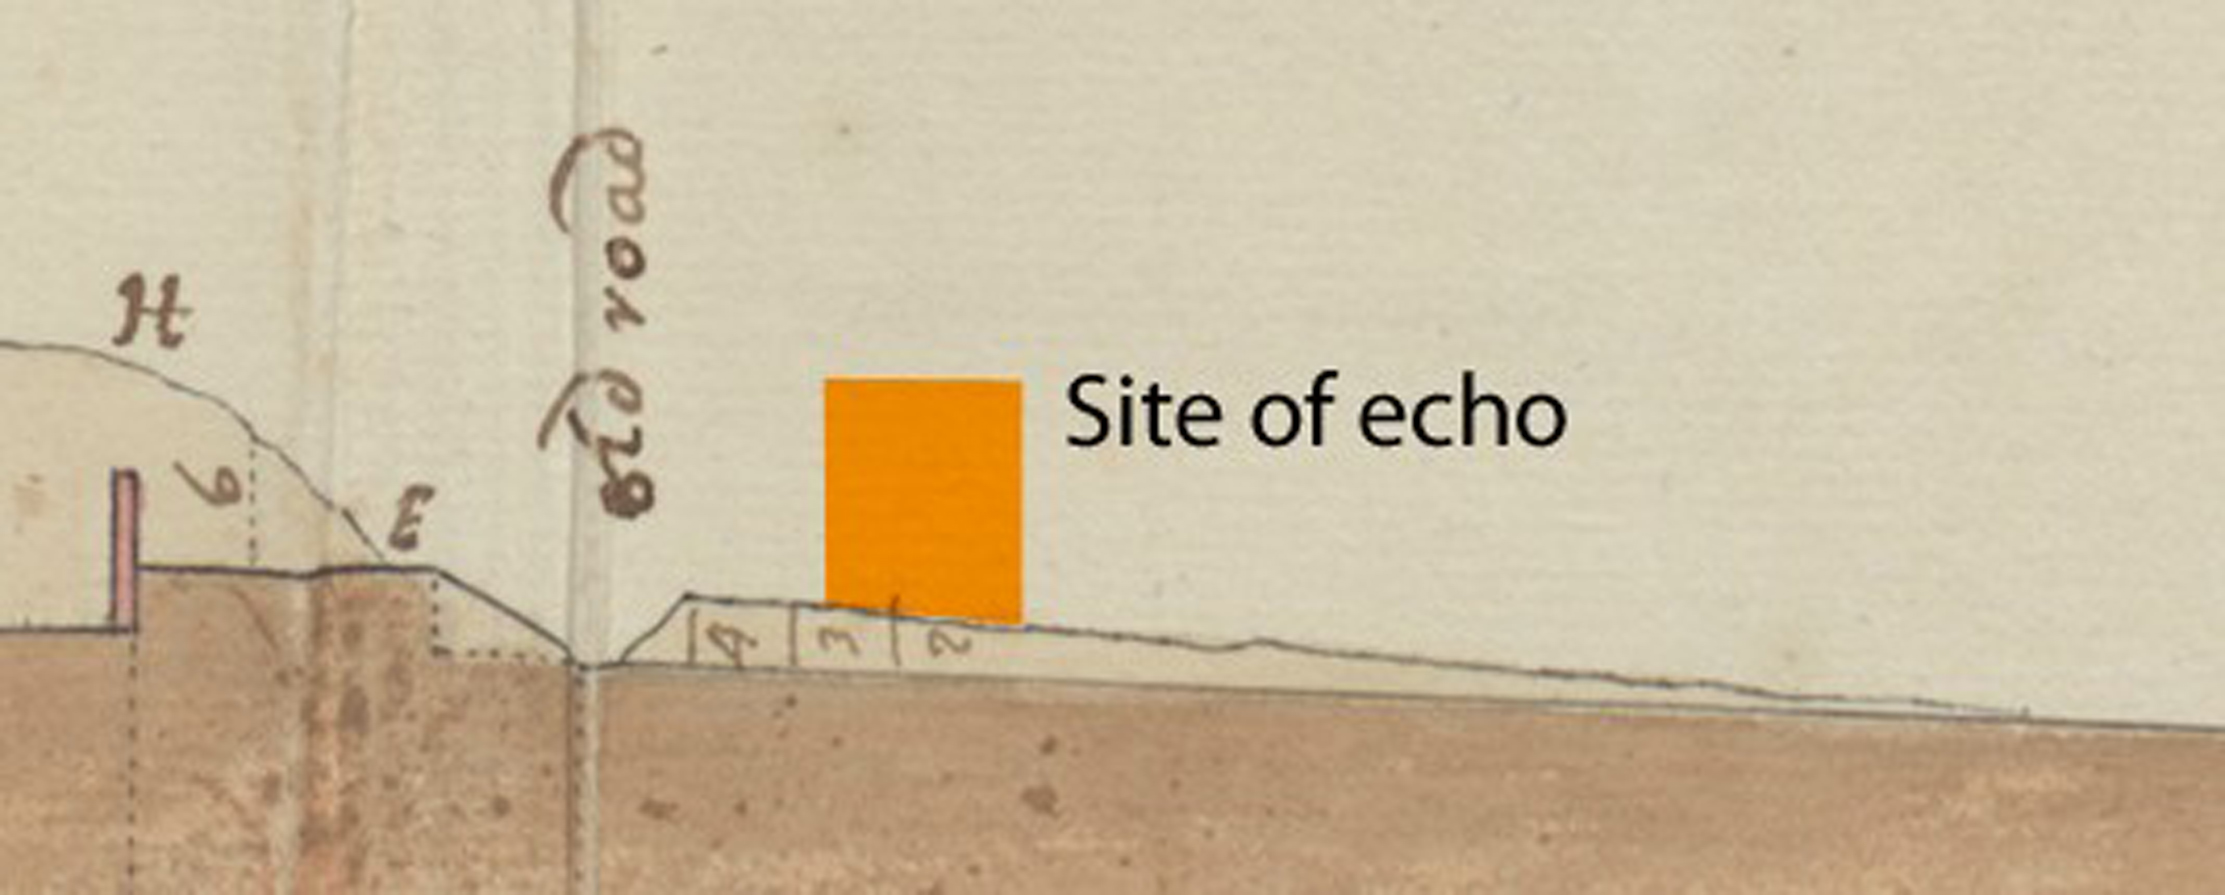 Detail of the 1720 section surveyed through the landscape and with the current position of the Echo added